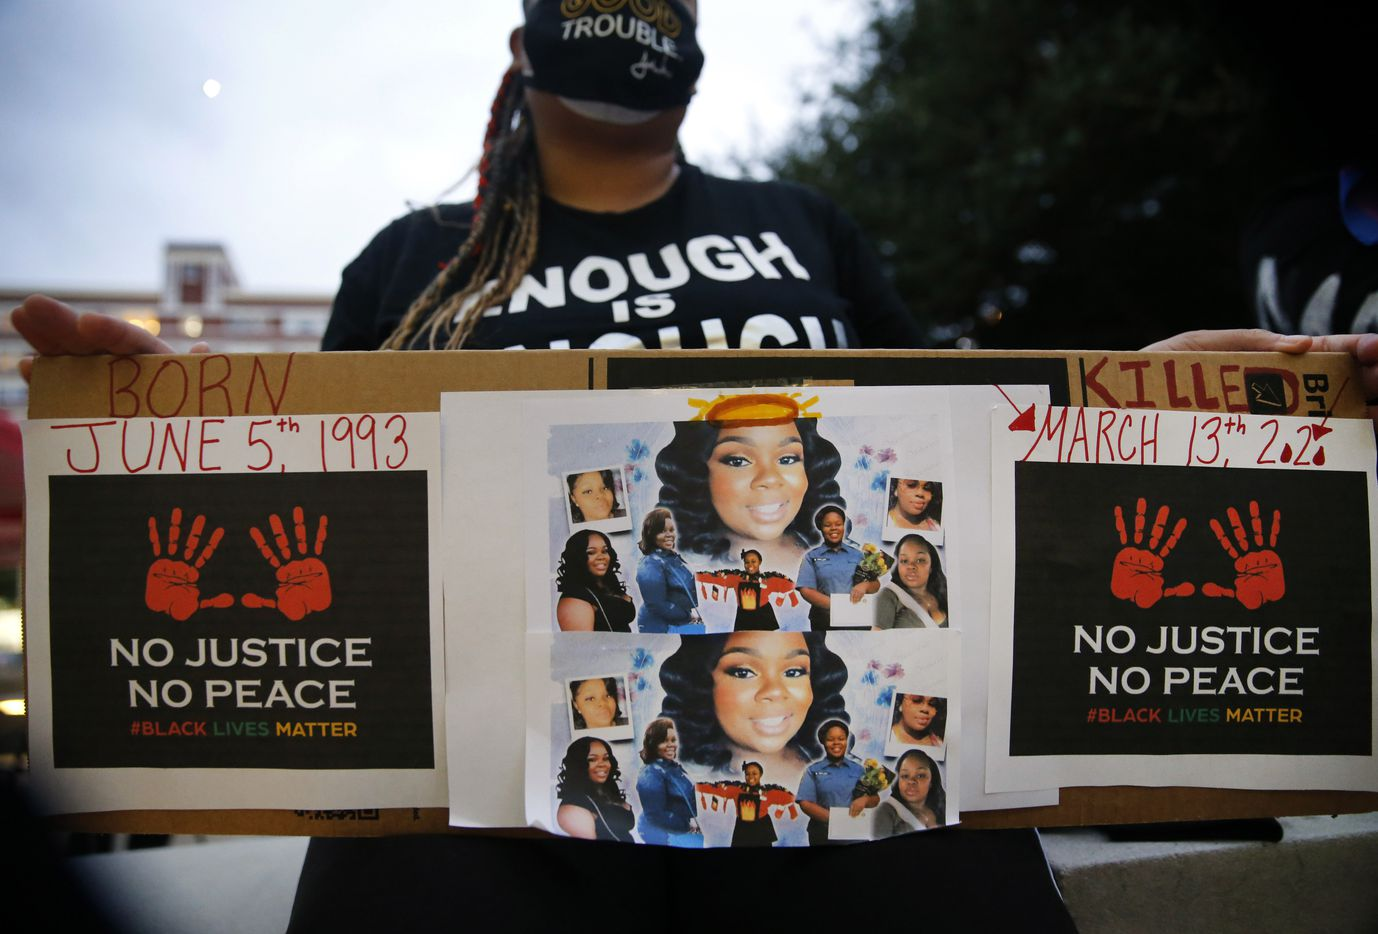 Shena Lee of Dallas displayed photos of Breonna Taylor during a Next Generation Action Network protest outside of Dallas Police Headquarters before they marched down S. Lamar St. in Dallas, Wednesday, September 23, 2020. A Kentucky grand jury brought no charges against the Louisville police for the killing of Taylor during a drug raid gone wrong. (Tom Fox/The Dallas Morning News)